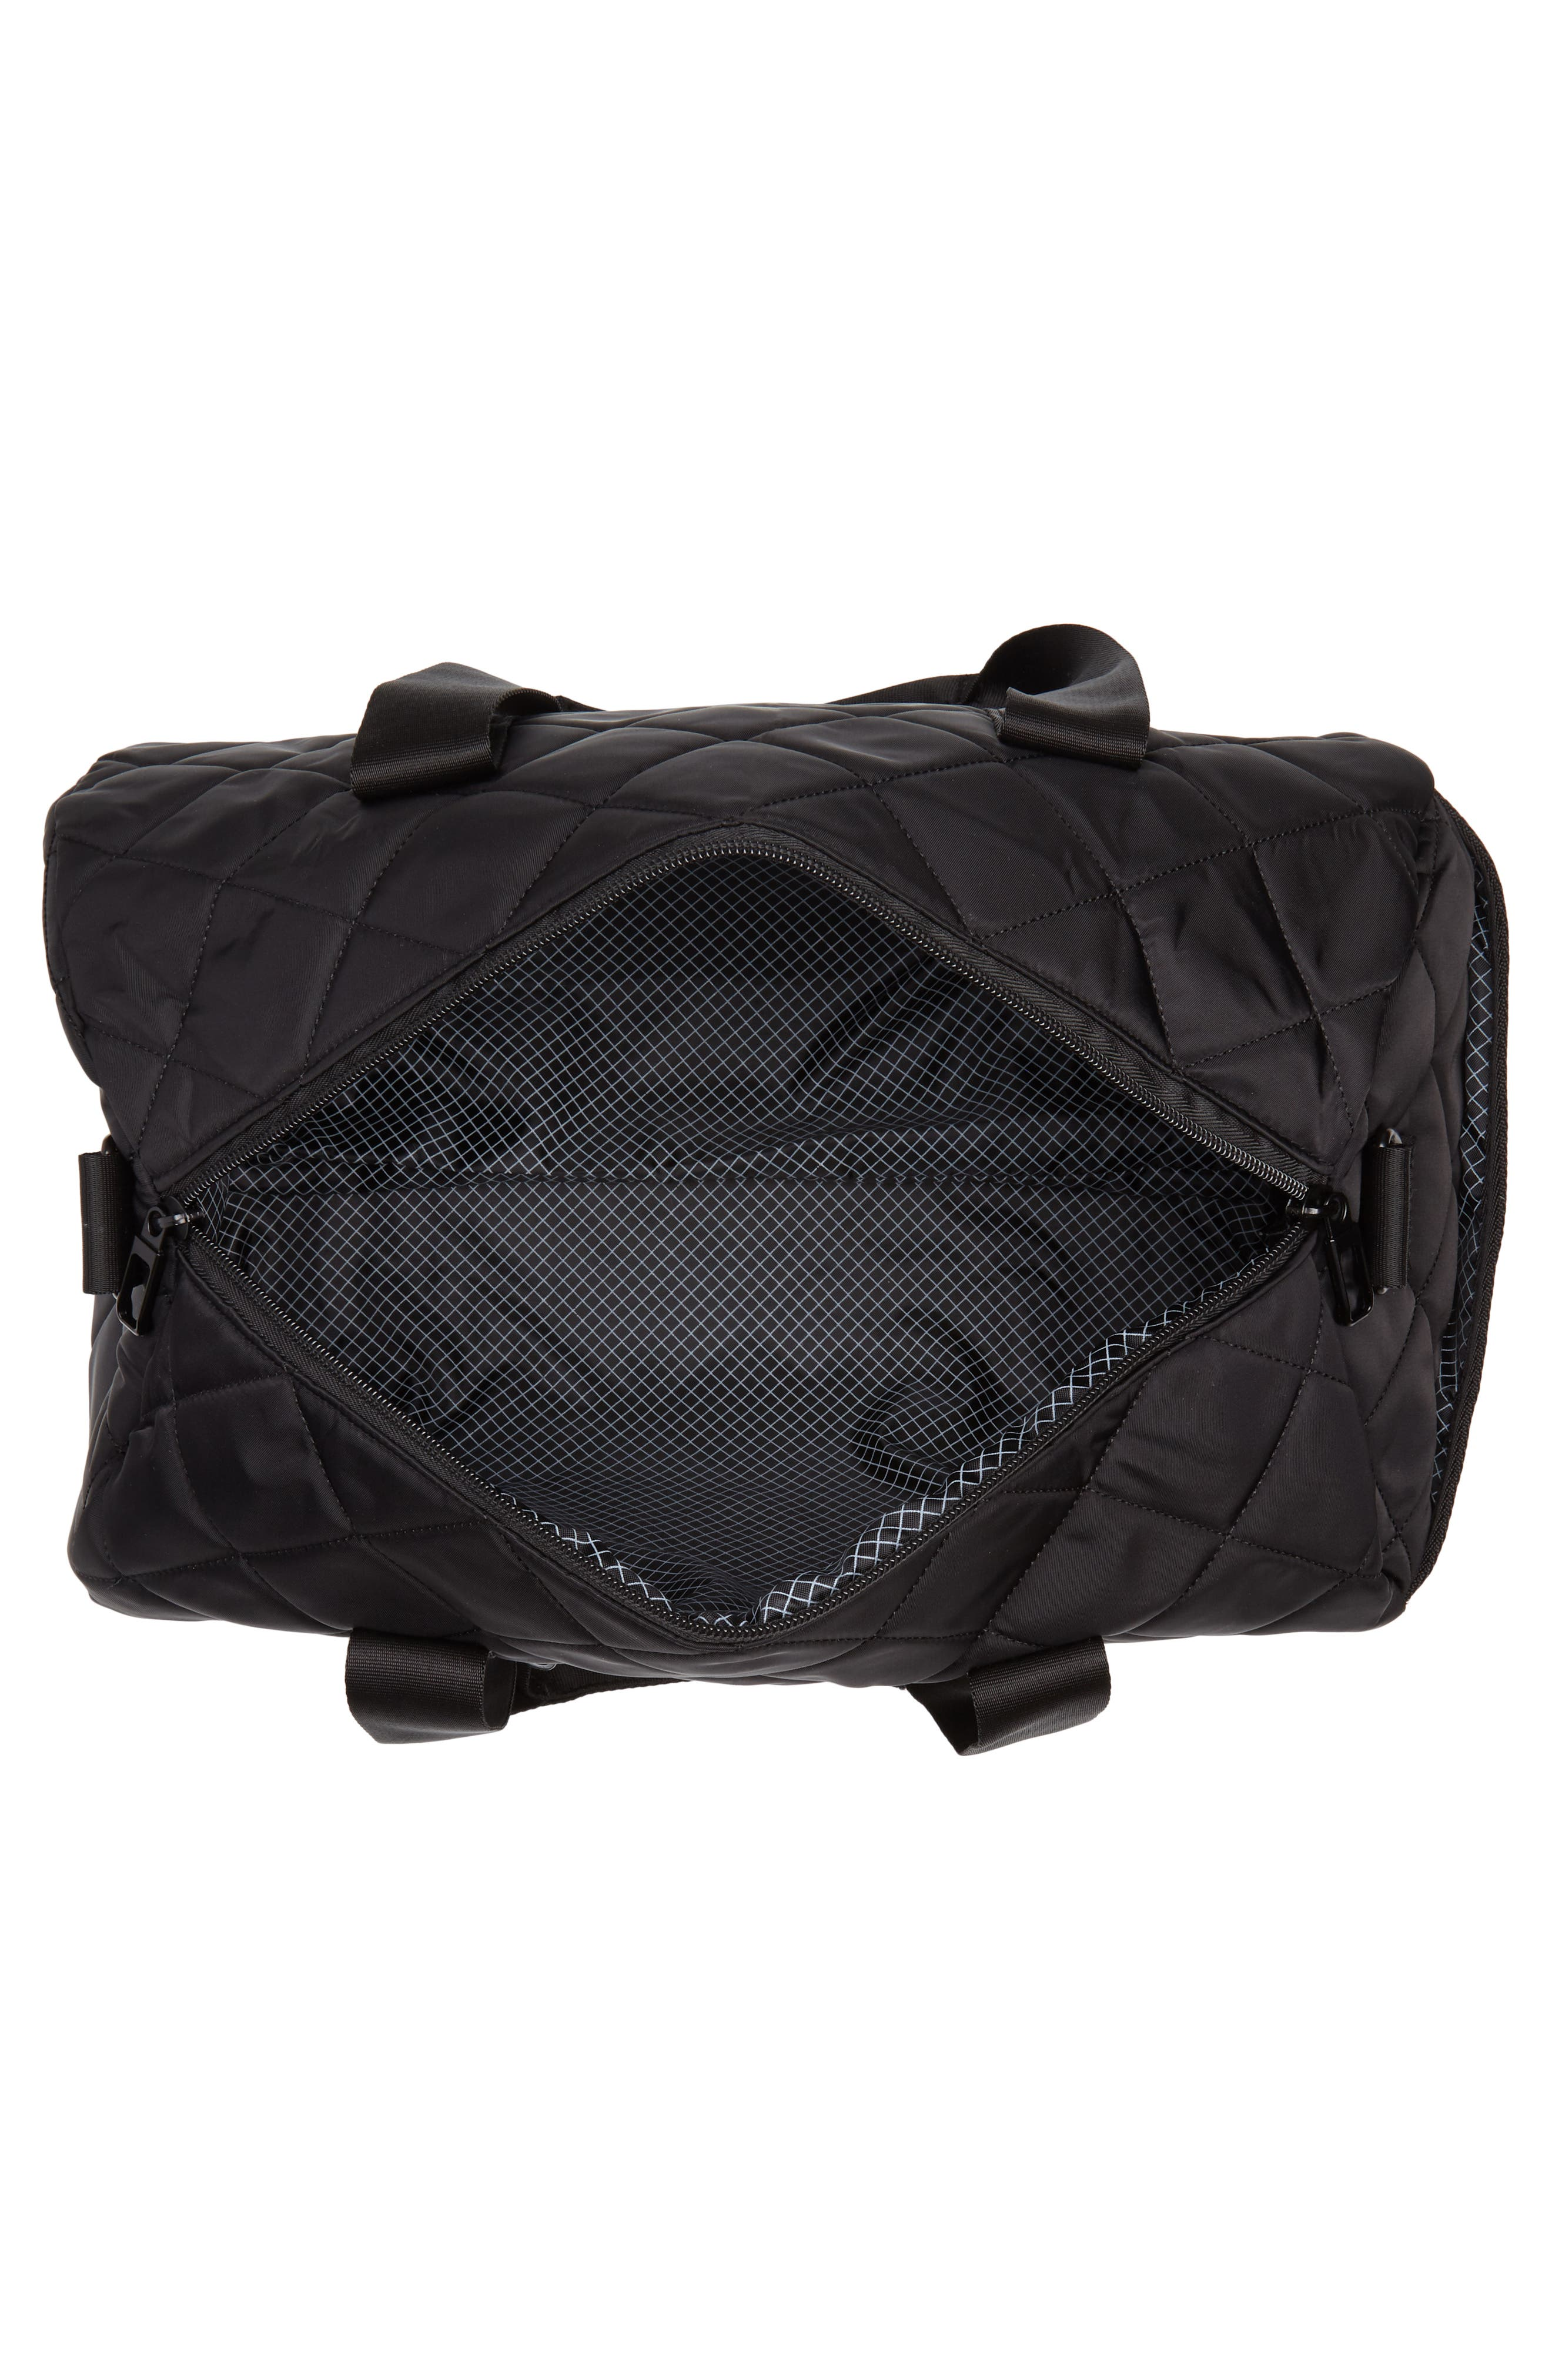 Roadie Small Duffel Bag,                             Alternate thumbnail 4, color,                             Quilted Black Nylon